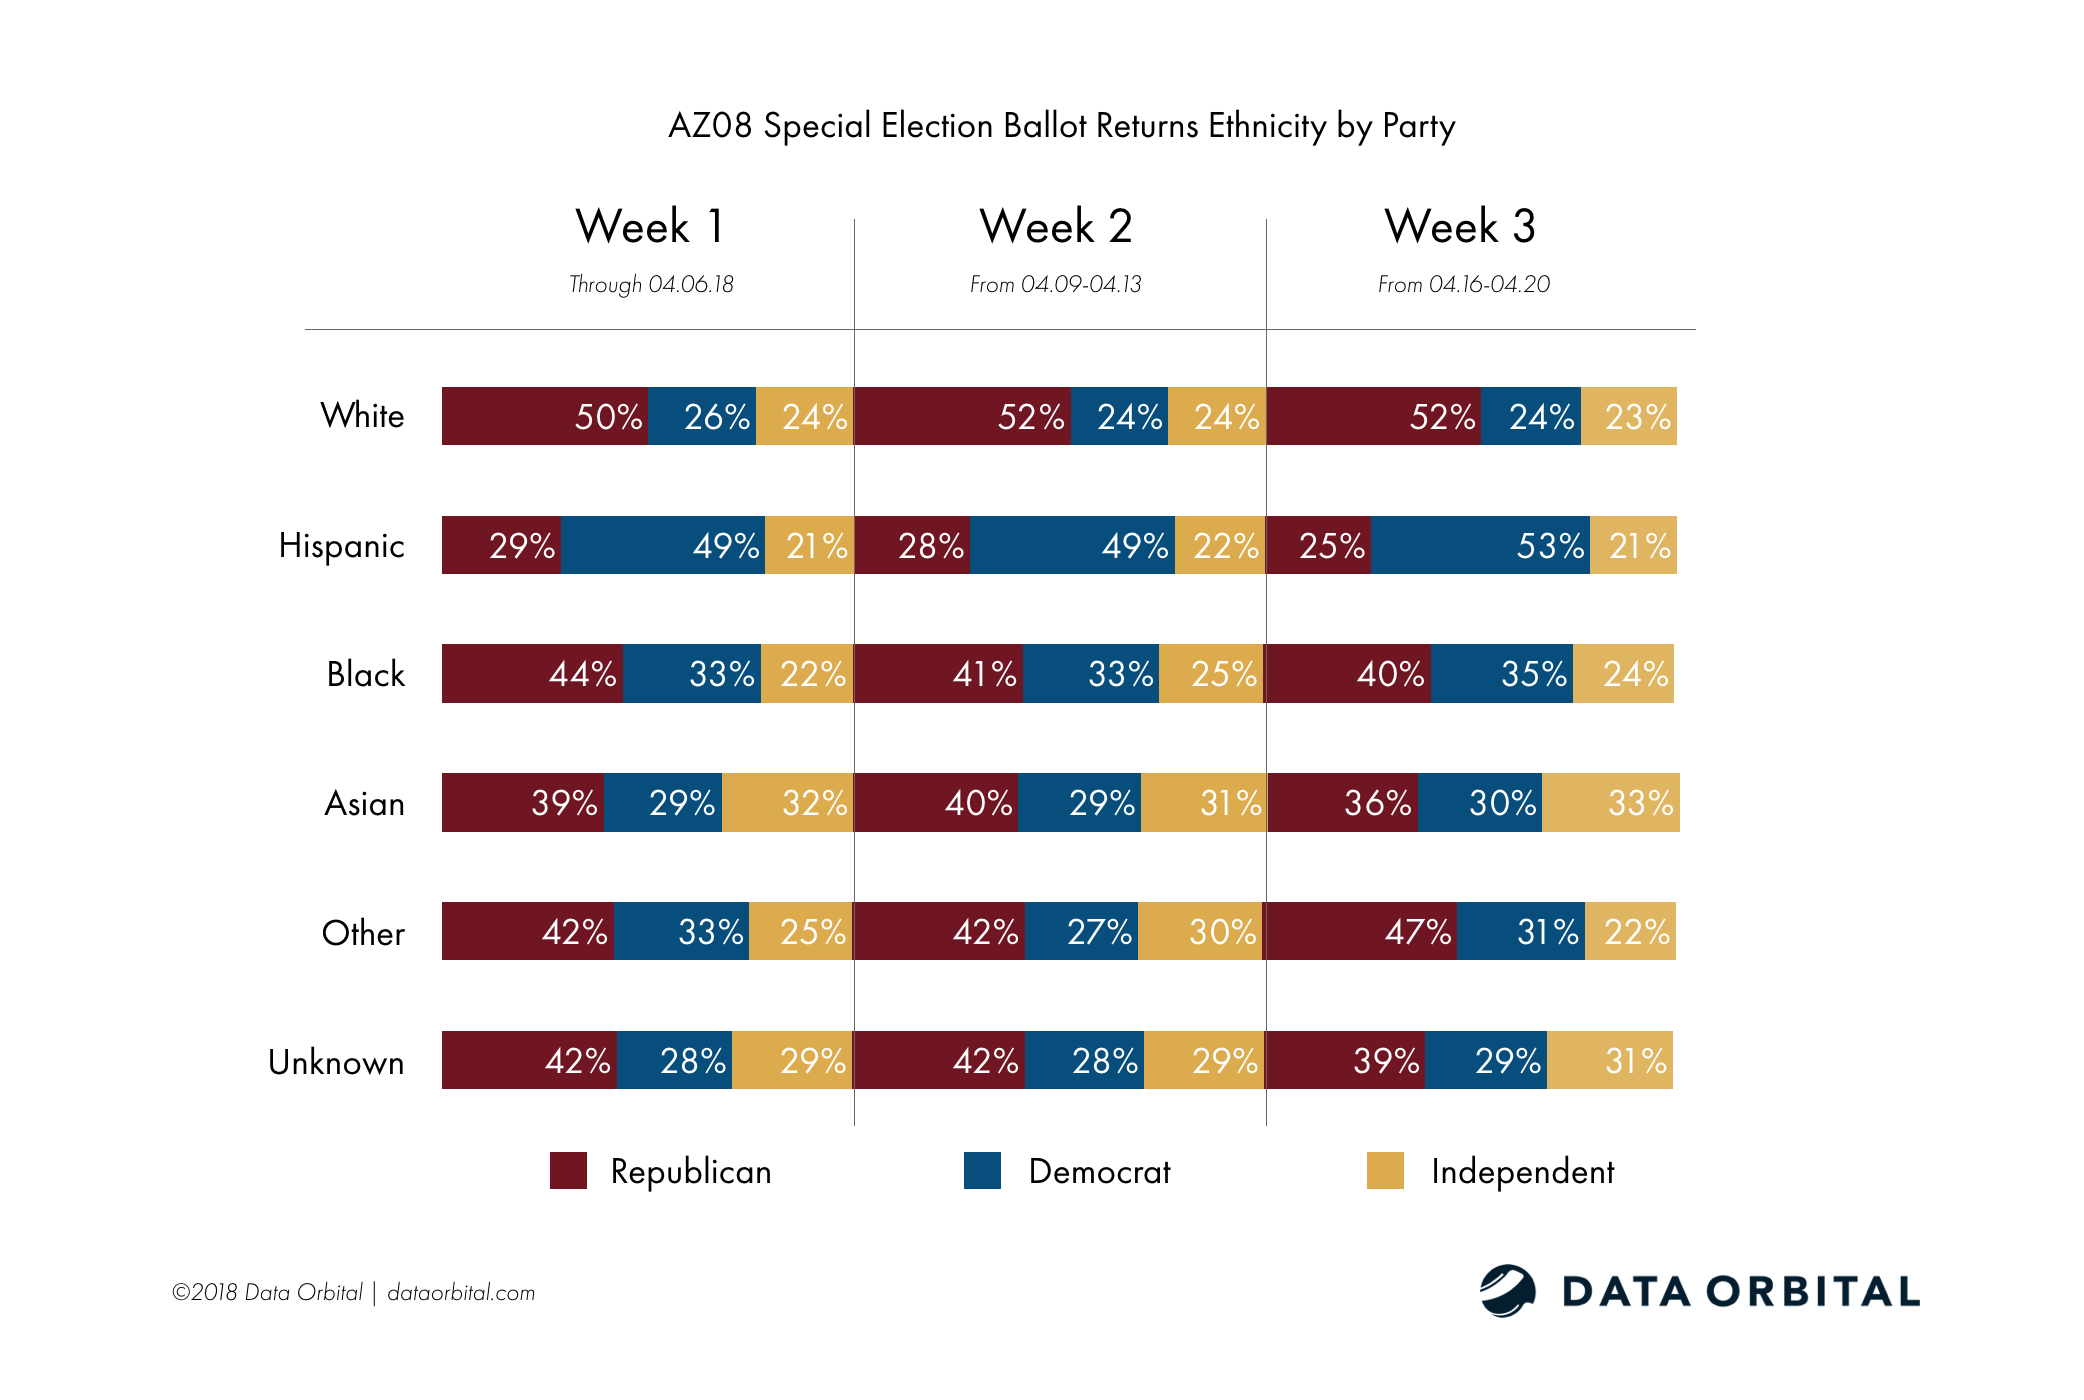 AZ08 Special Election Ballot Returns Week 3 Wrap Up and Analysis Ethnicity by Party